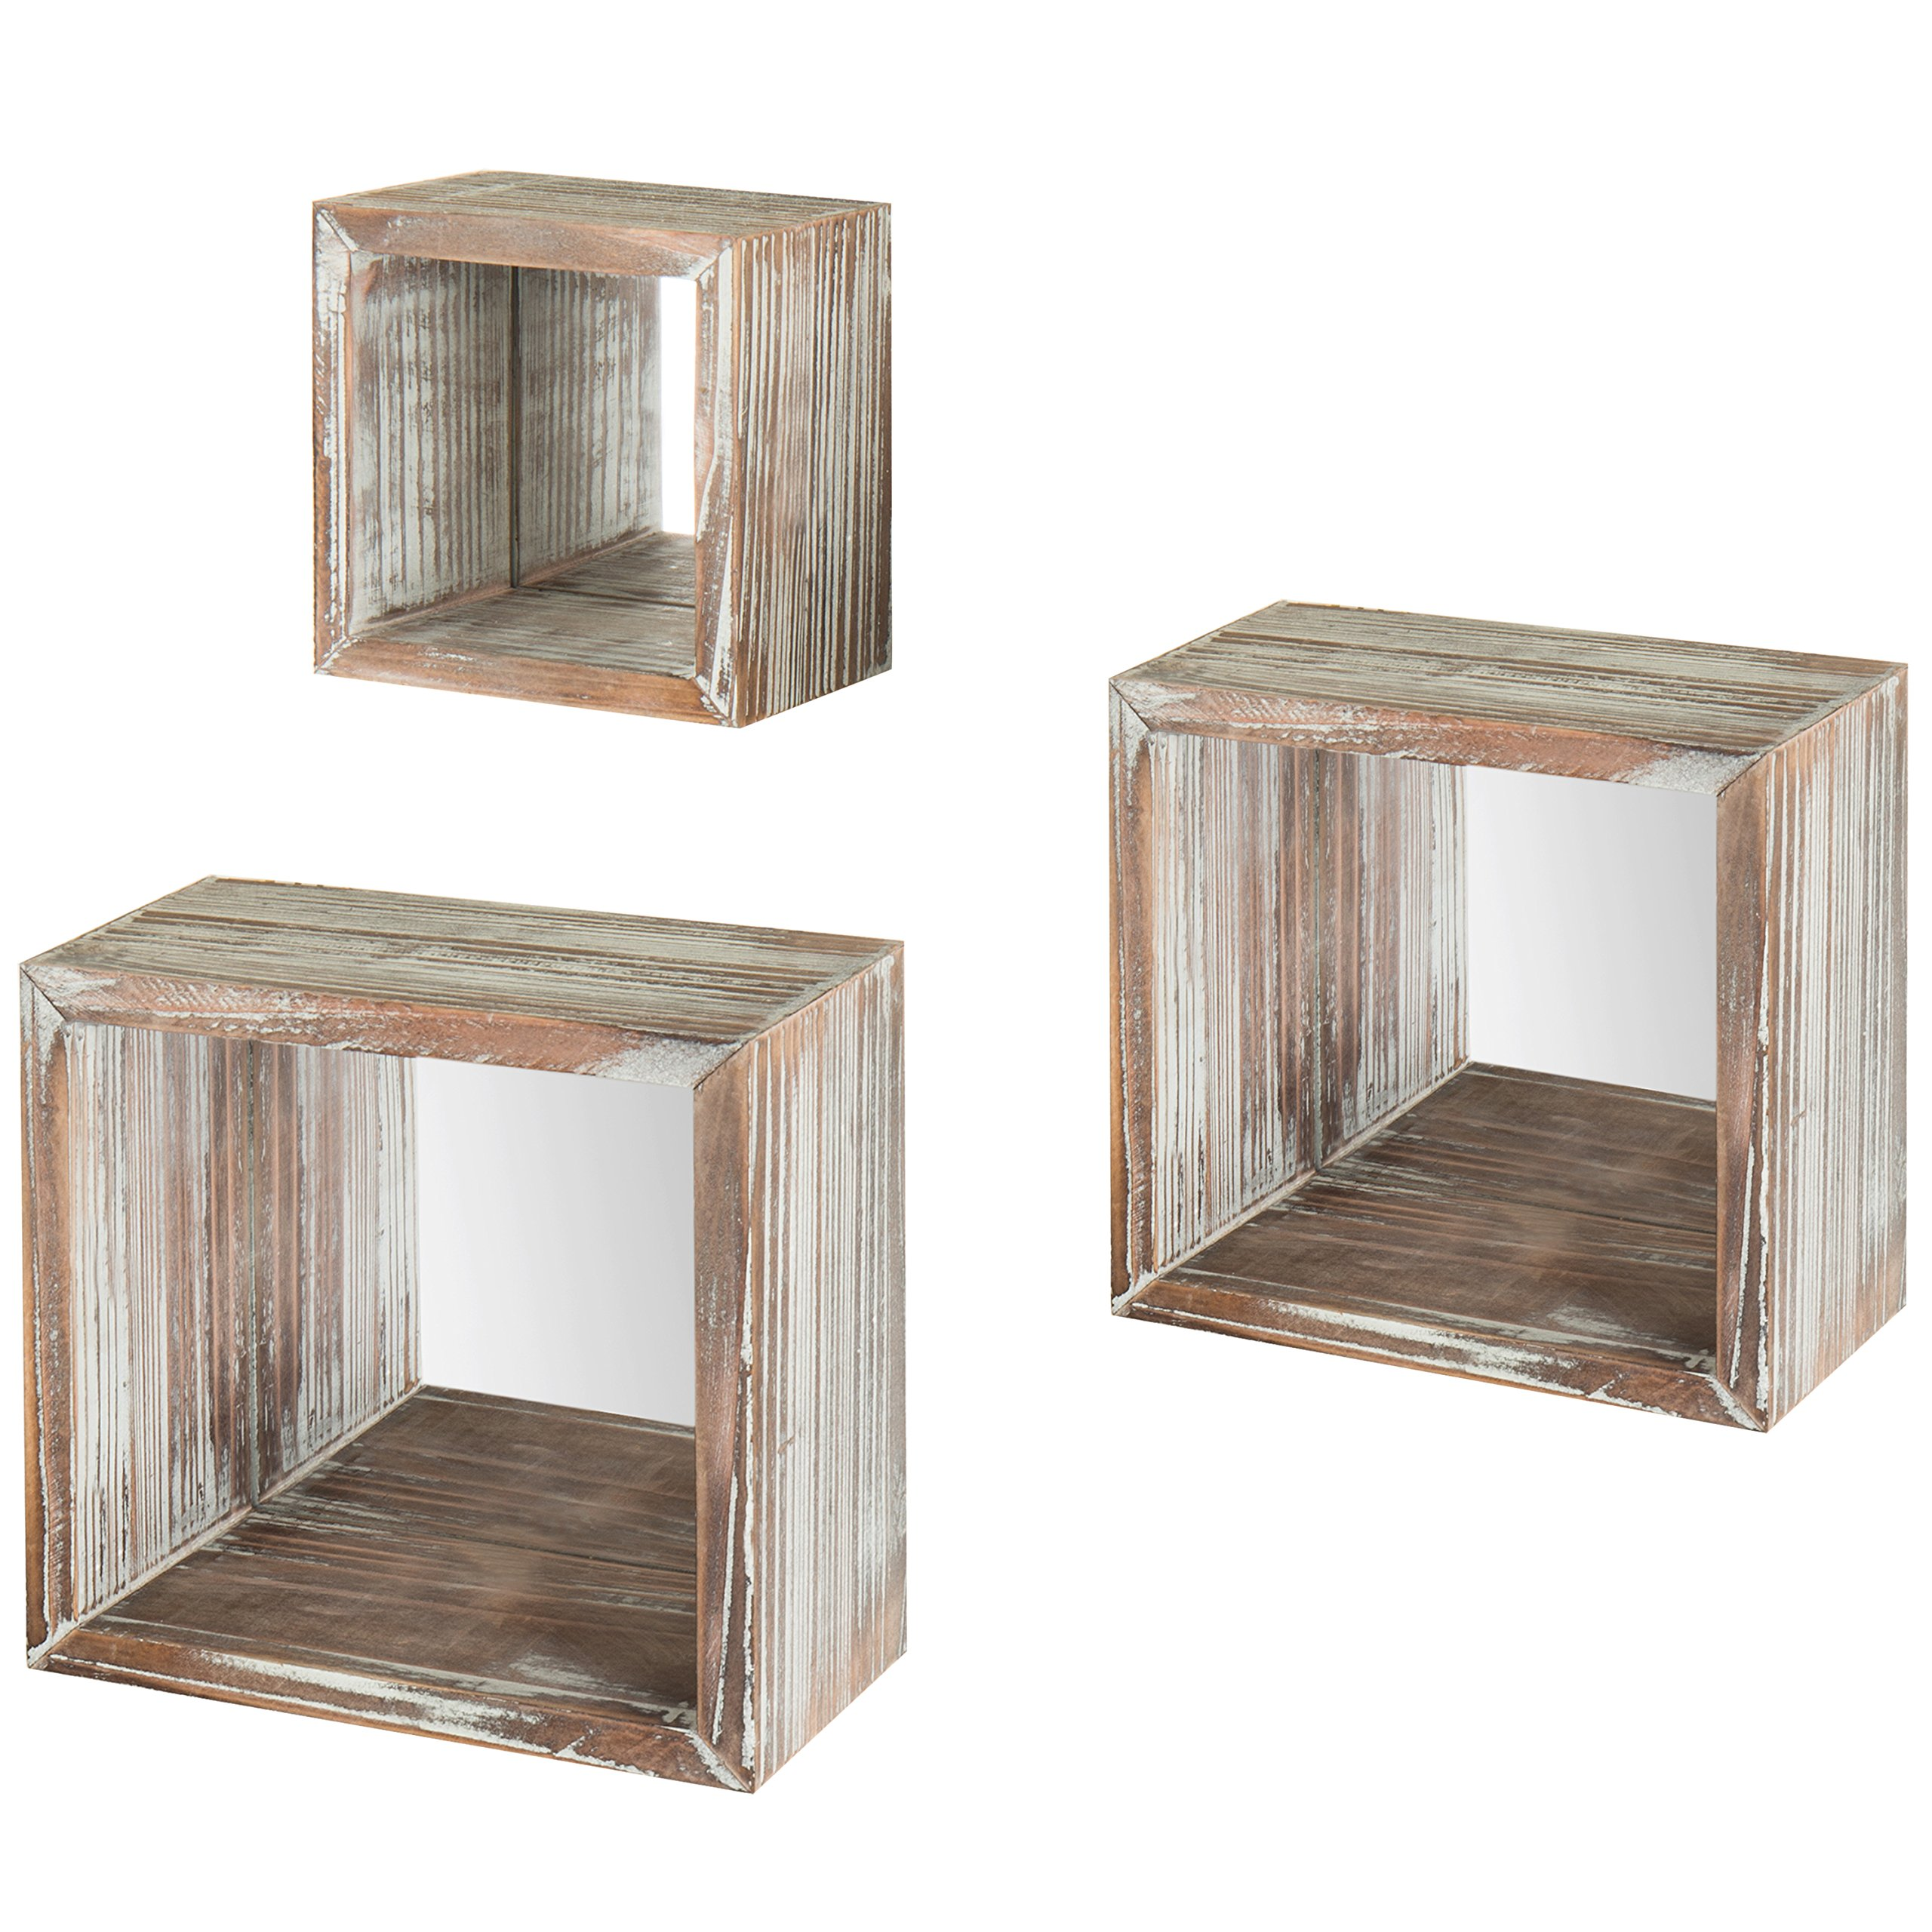 MyGift Set of 3 Square Torched Wood Wall-Mounted Shadow Boxes with Reflective Backing by MyGift